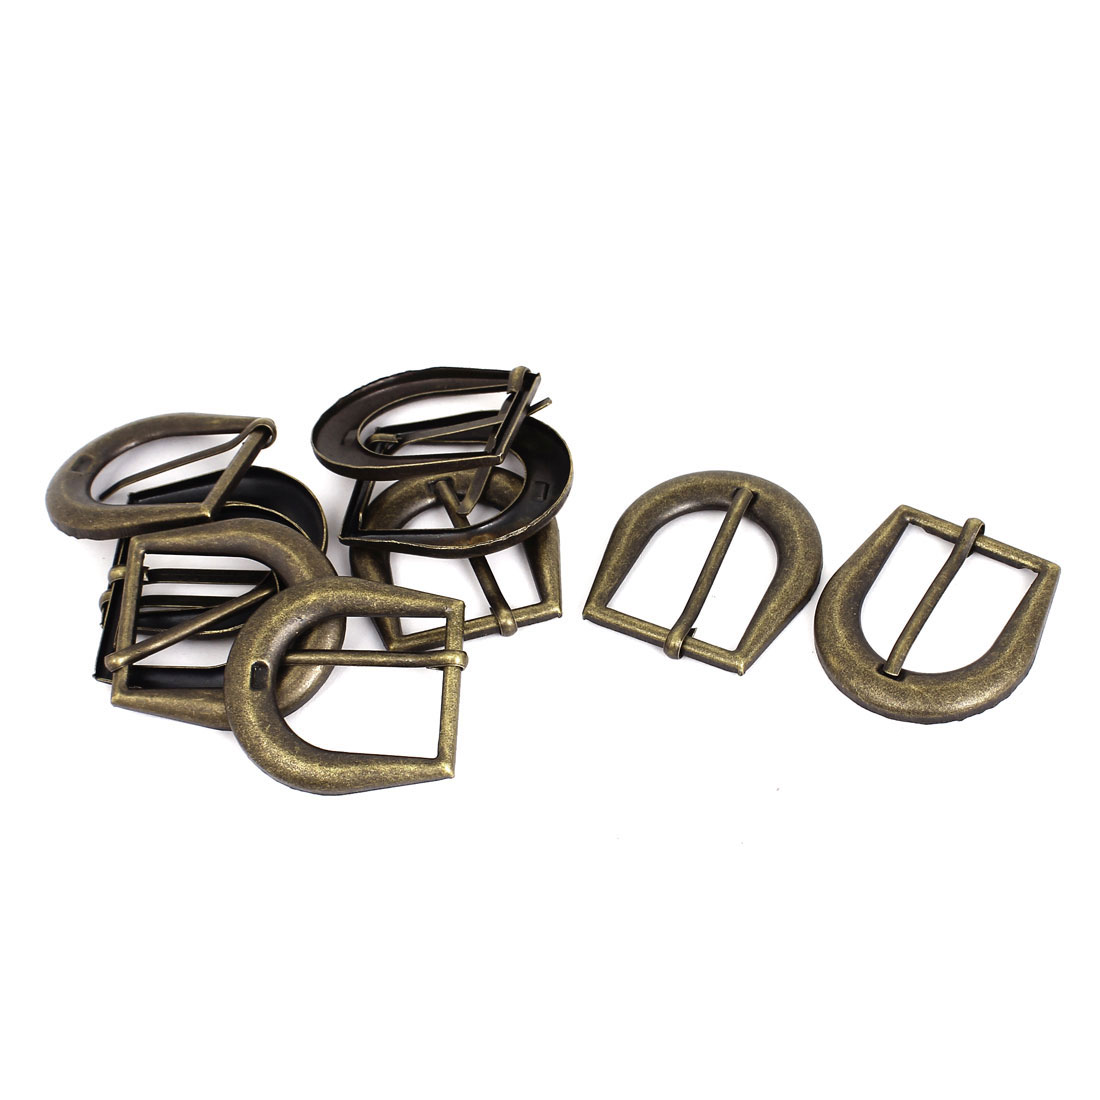 Leather Bag Clothes Vintage Style Metal Single Pin Buckles Bronze Tone 10Pcs